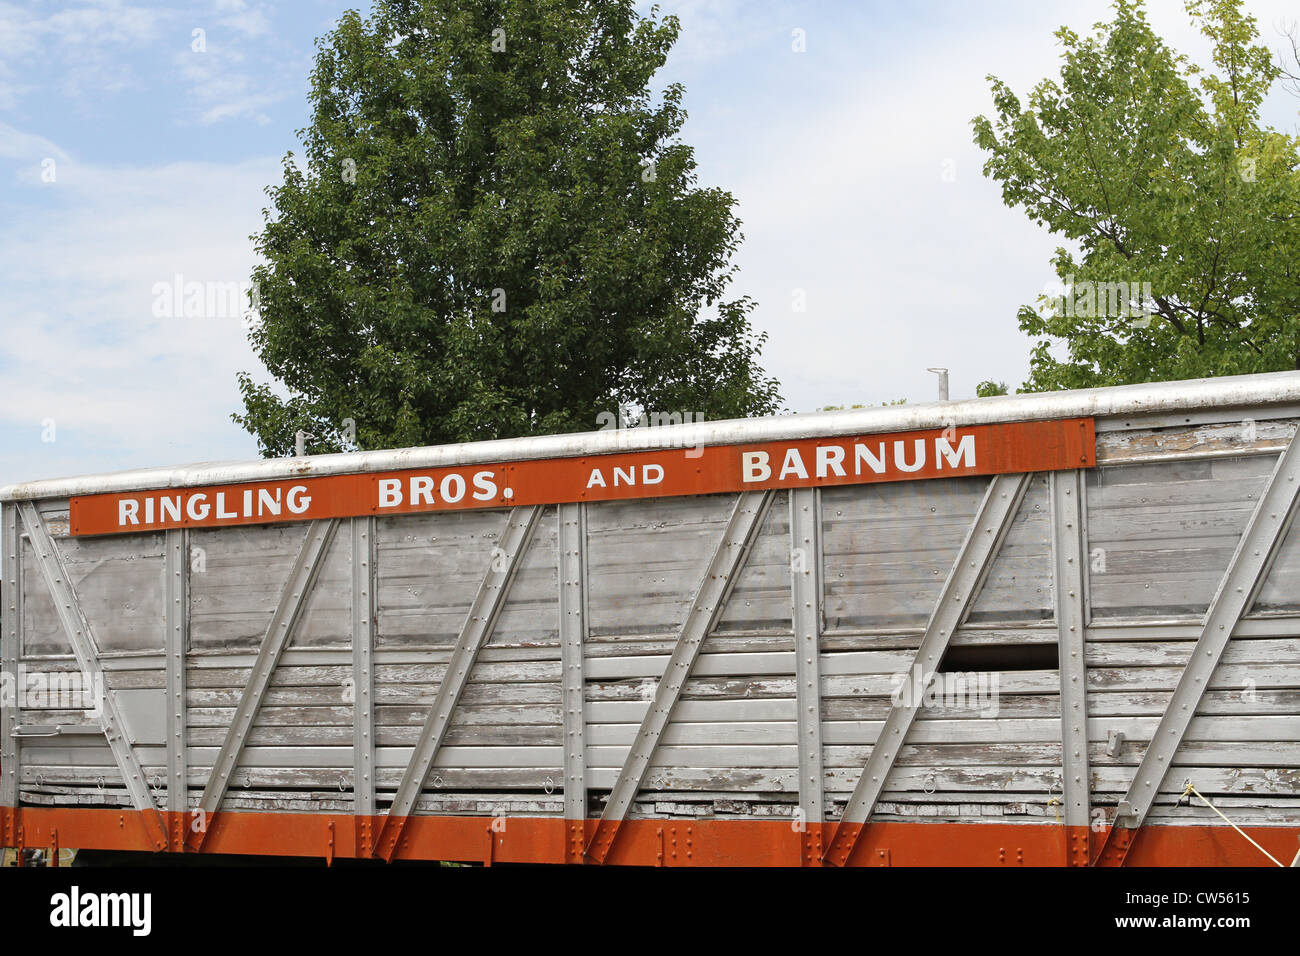 An old circus train car at the Circus World Museum. - Stock Image